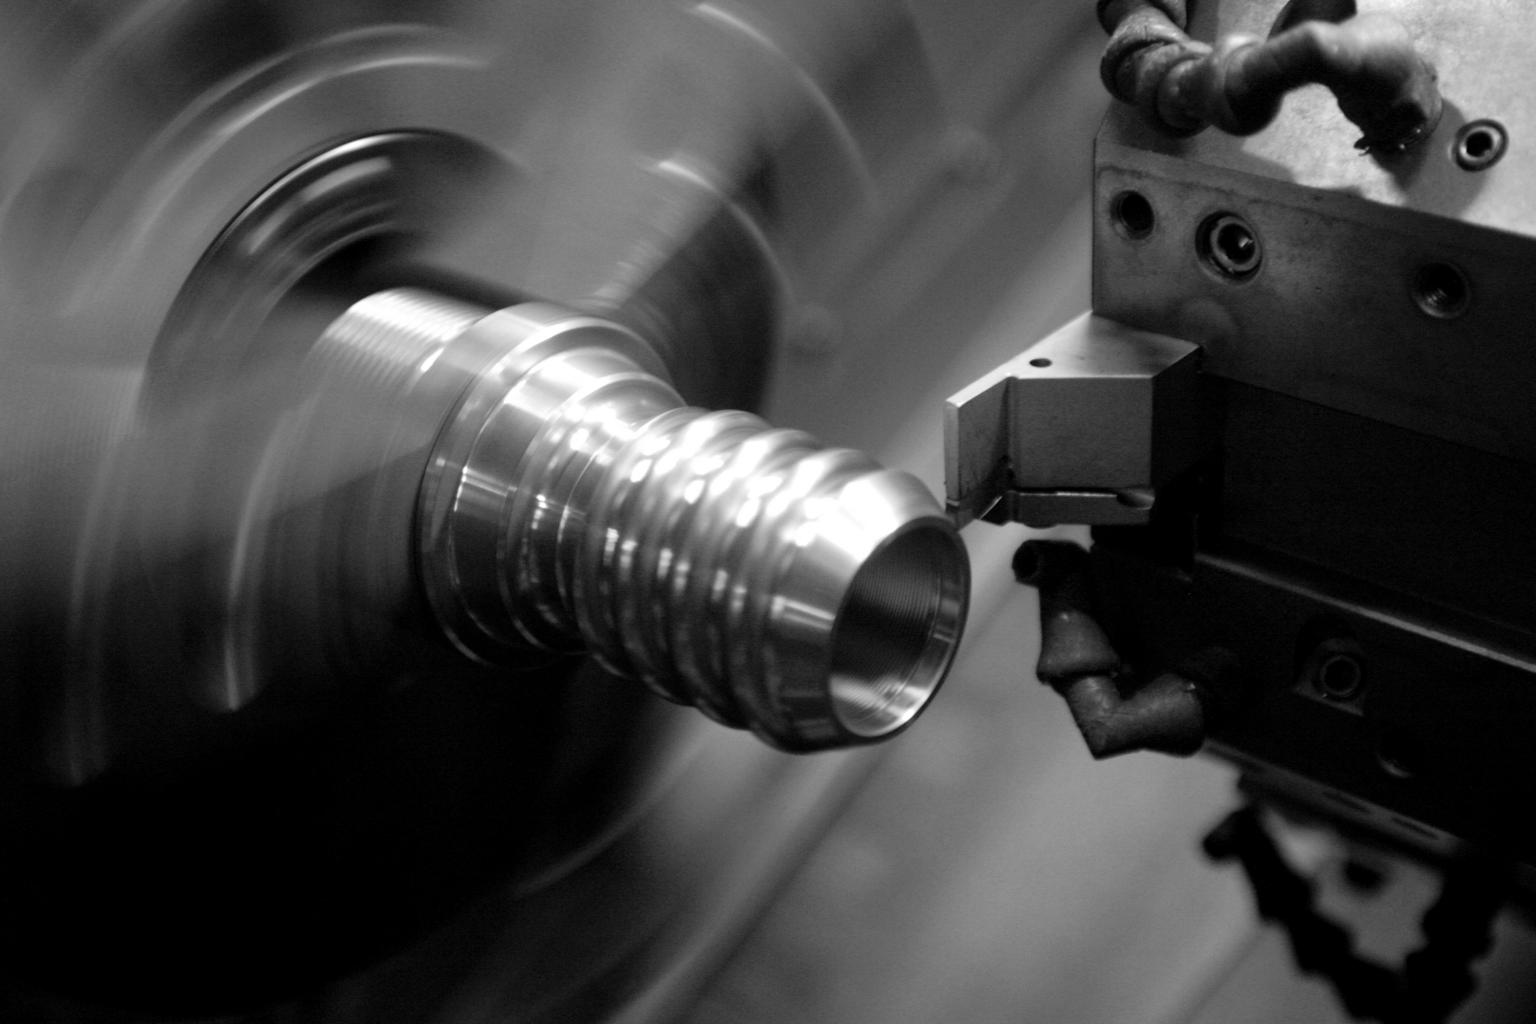 Any product is the sum of its parts, which is why the quality of fastener components is vital